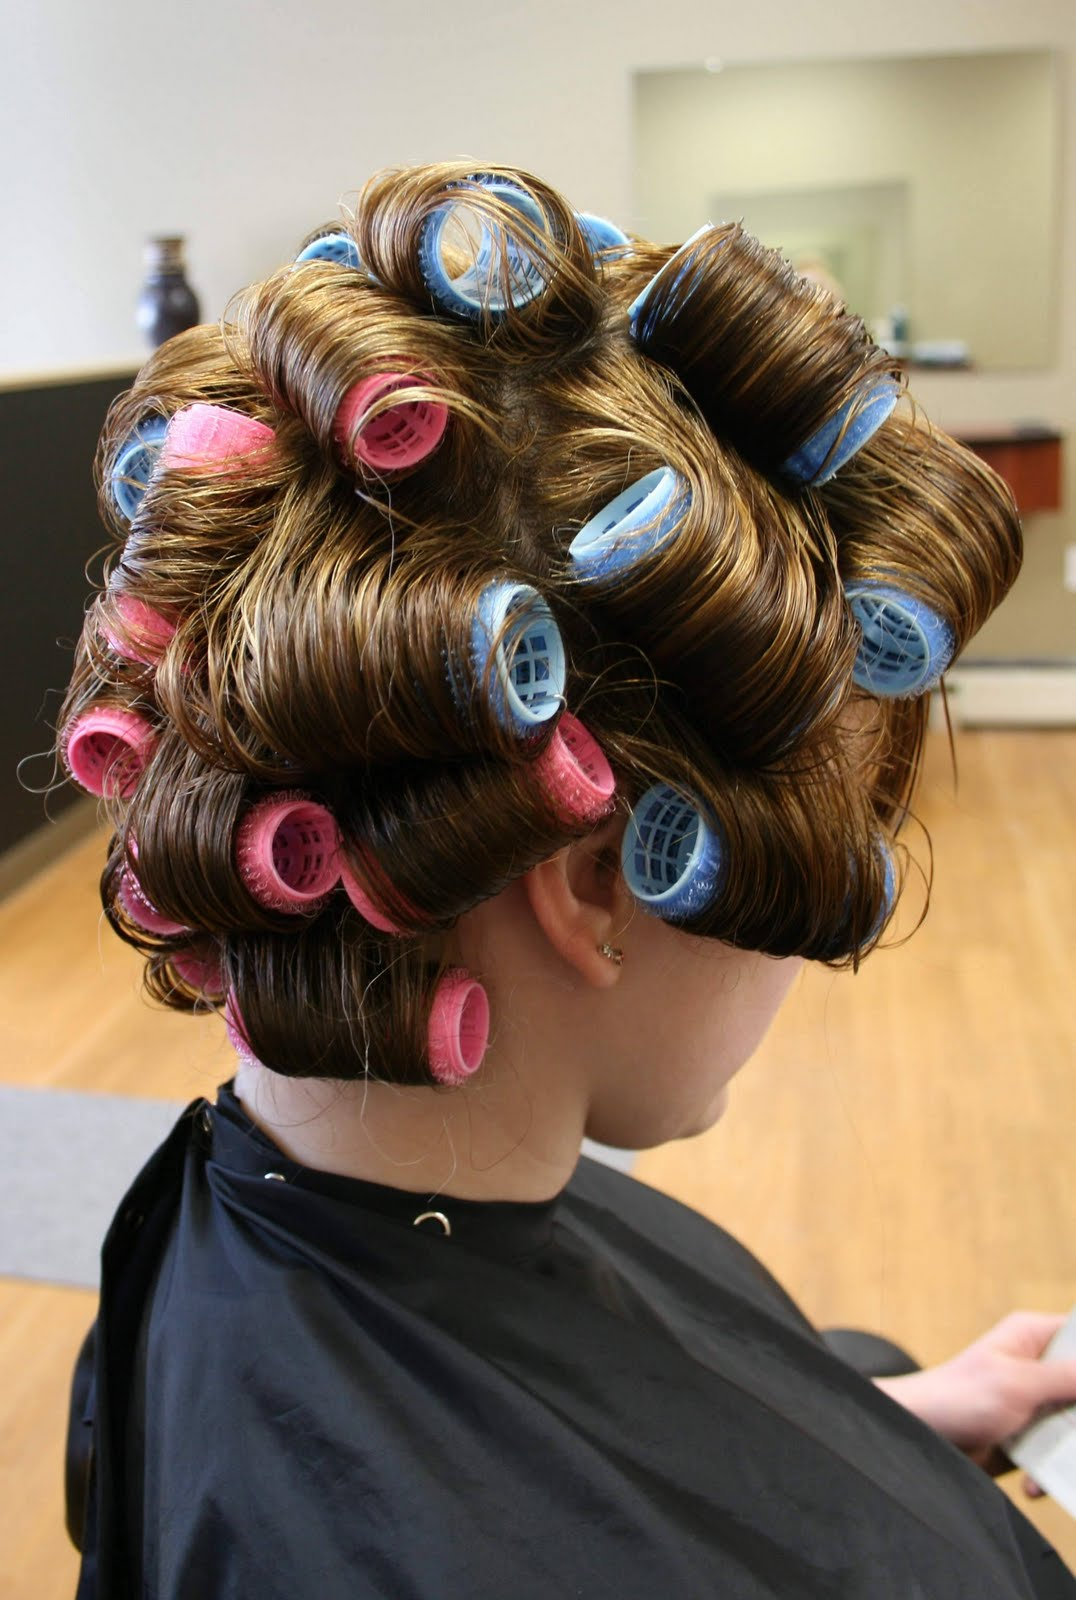 Hair After Rollers LONG HAIRSTYLES